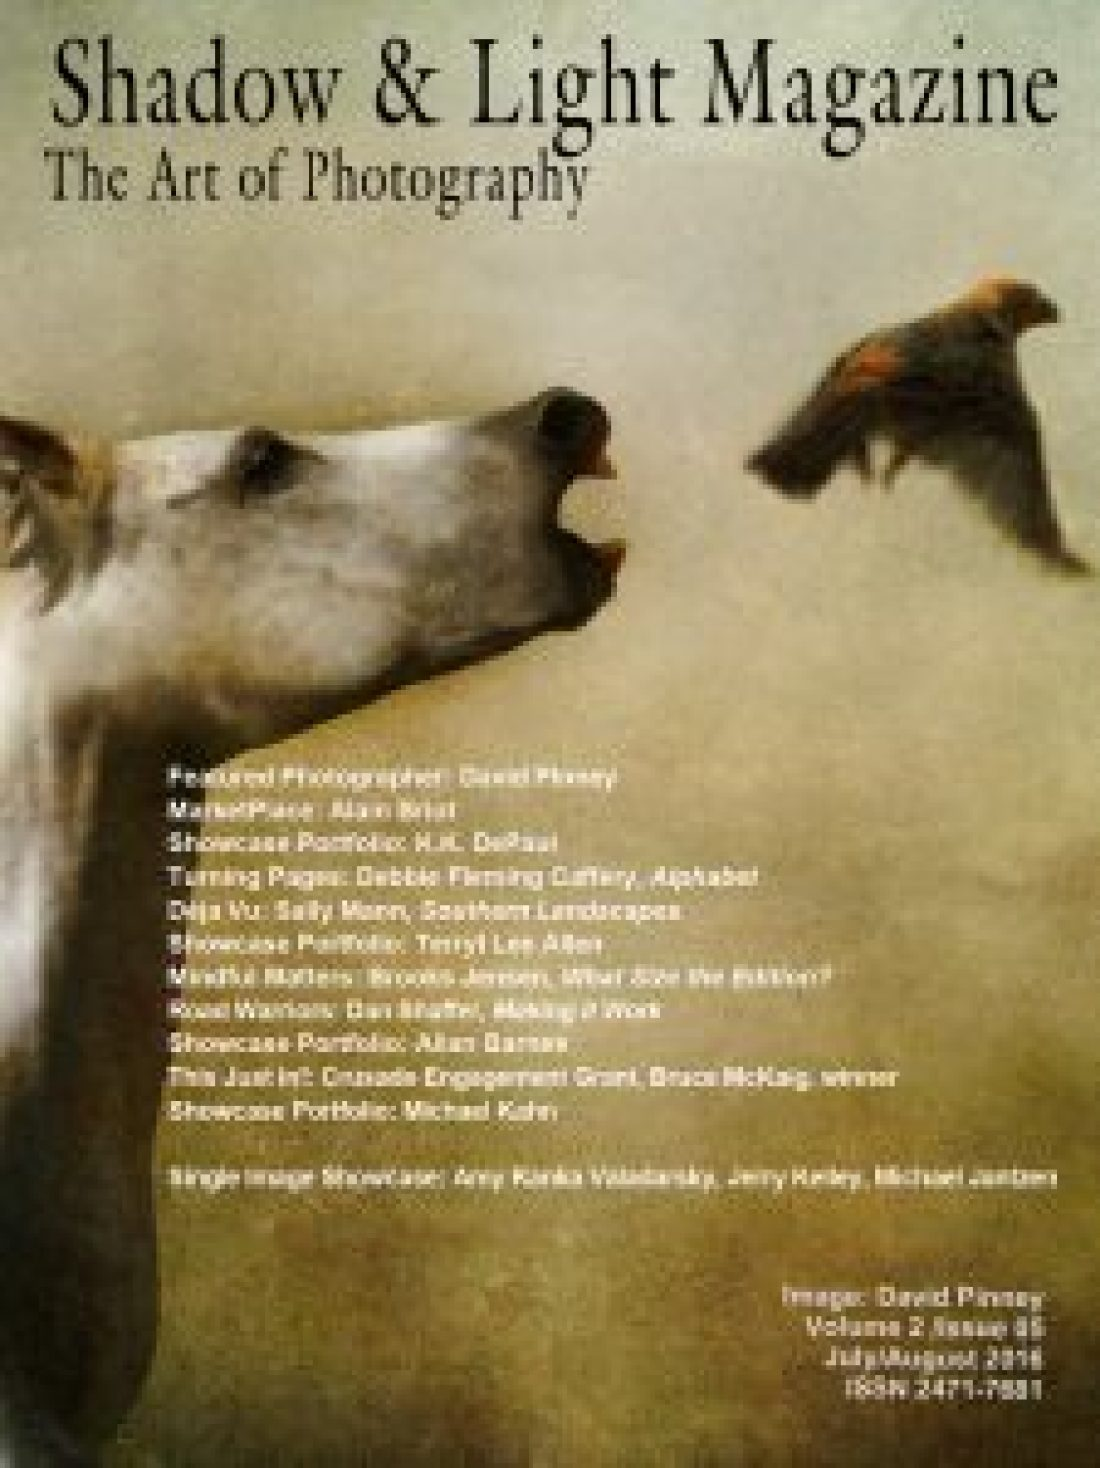 david pinney photography and shadow light magazine